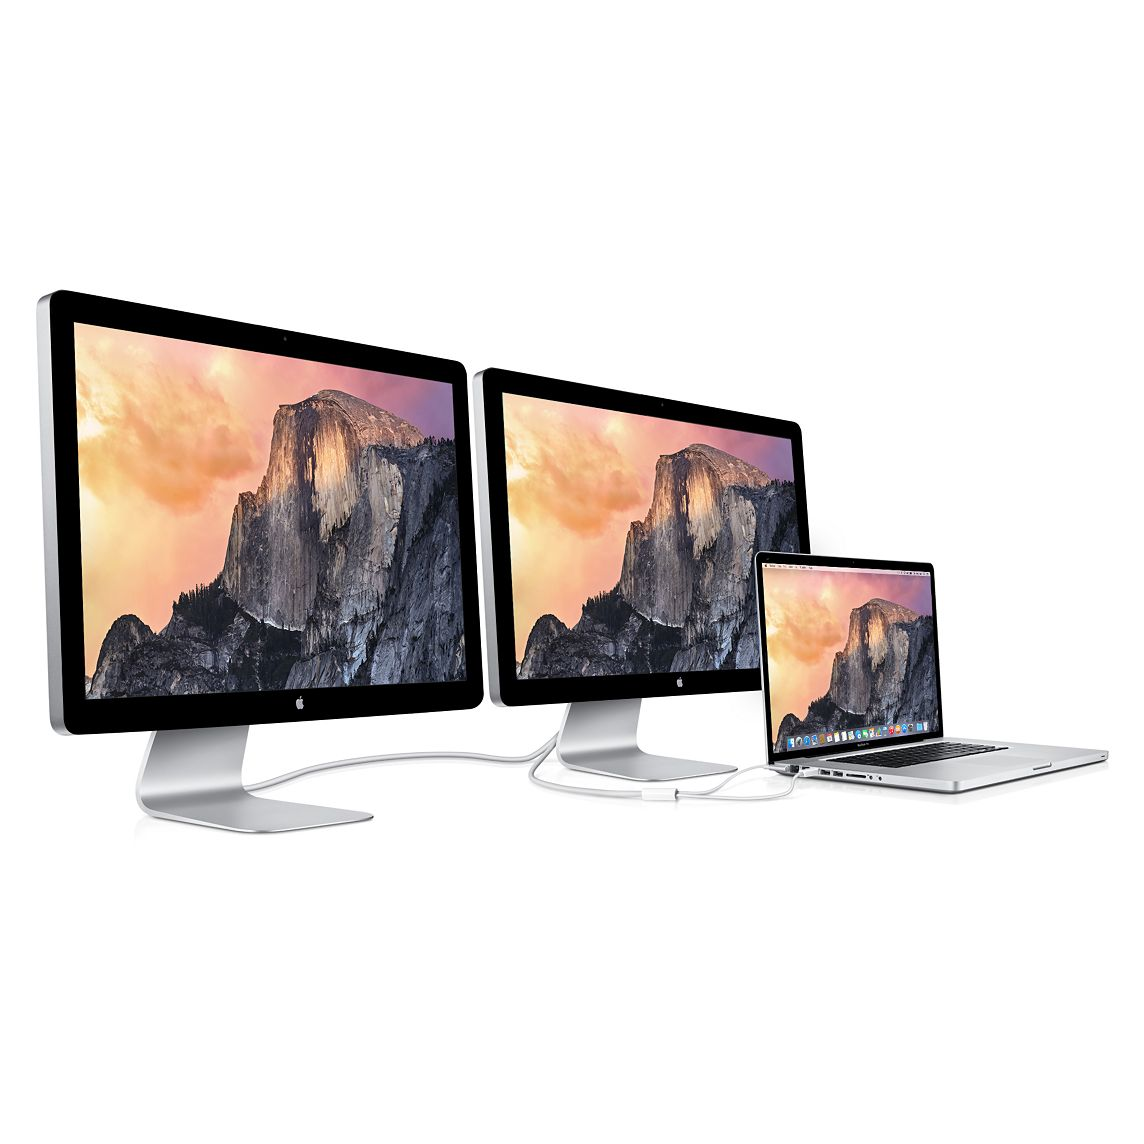 Apple Thunderbolt Display (27-inch) - 2nd hand